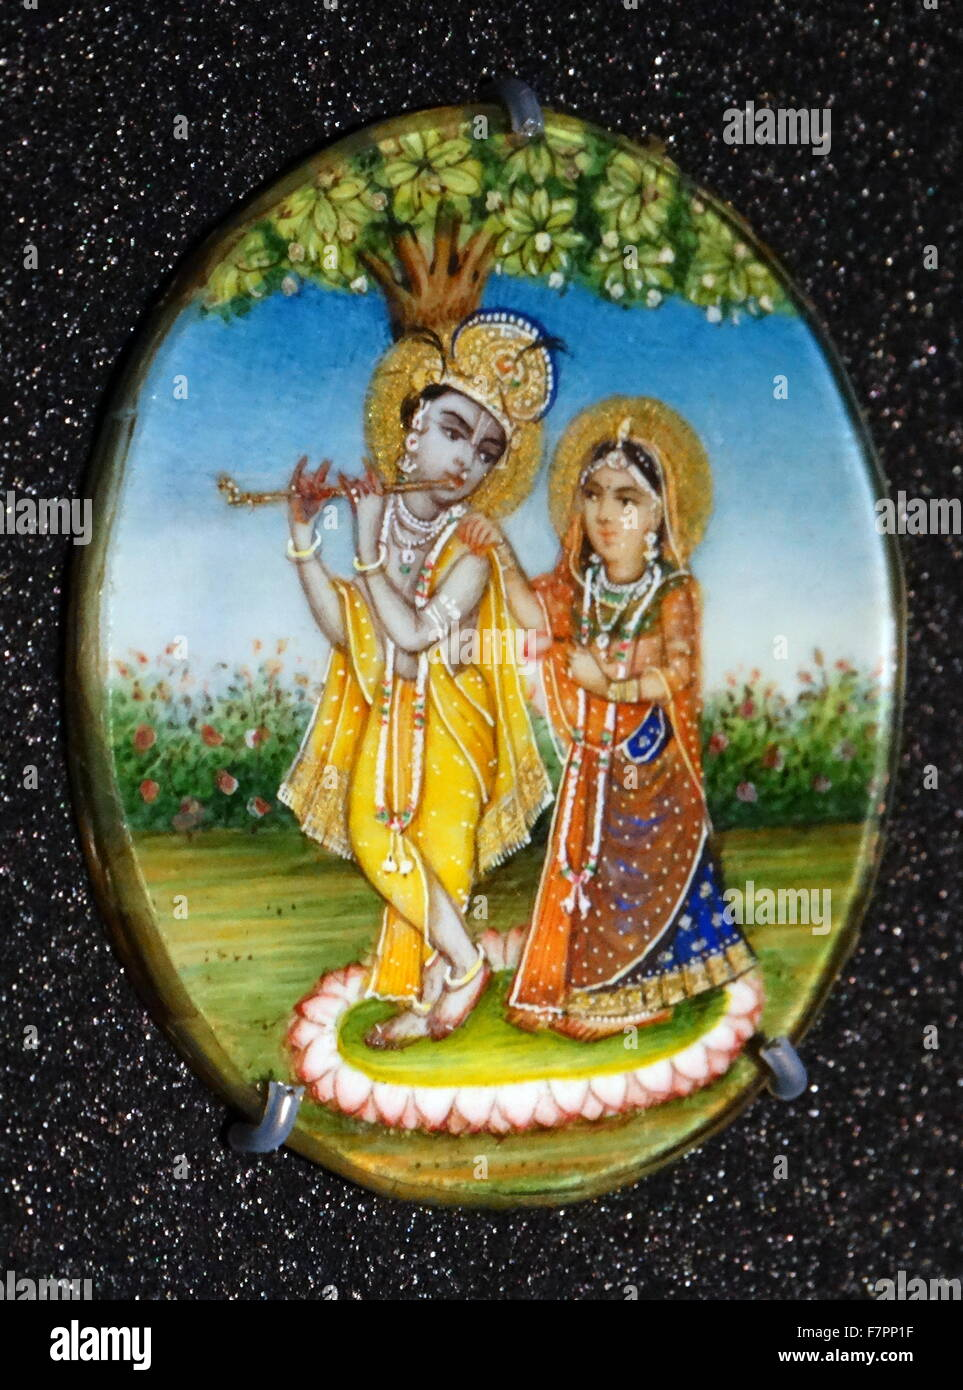 Hindu deities, Krishna and radha. From a collection of roundels of Hindu deities. Gouache on ivory with pencil, - Stock Image